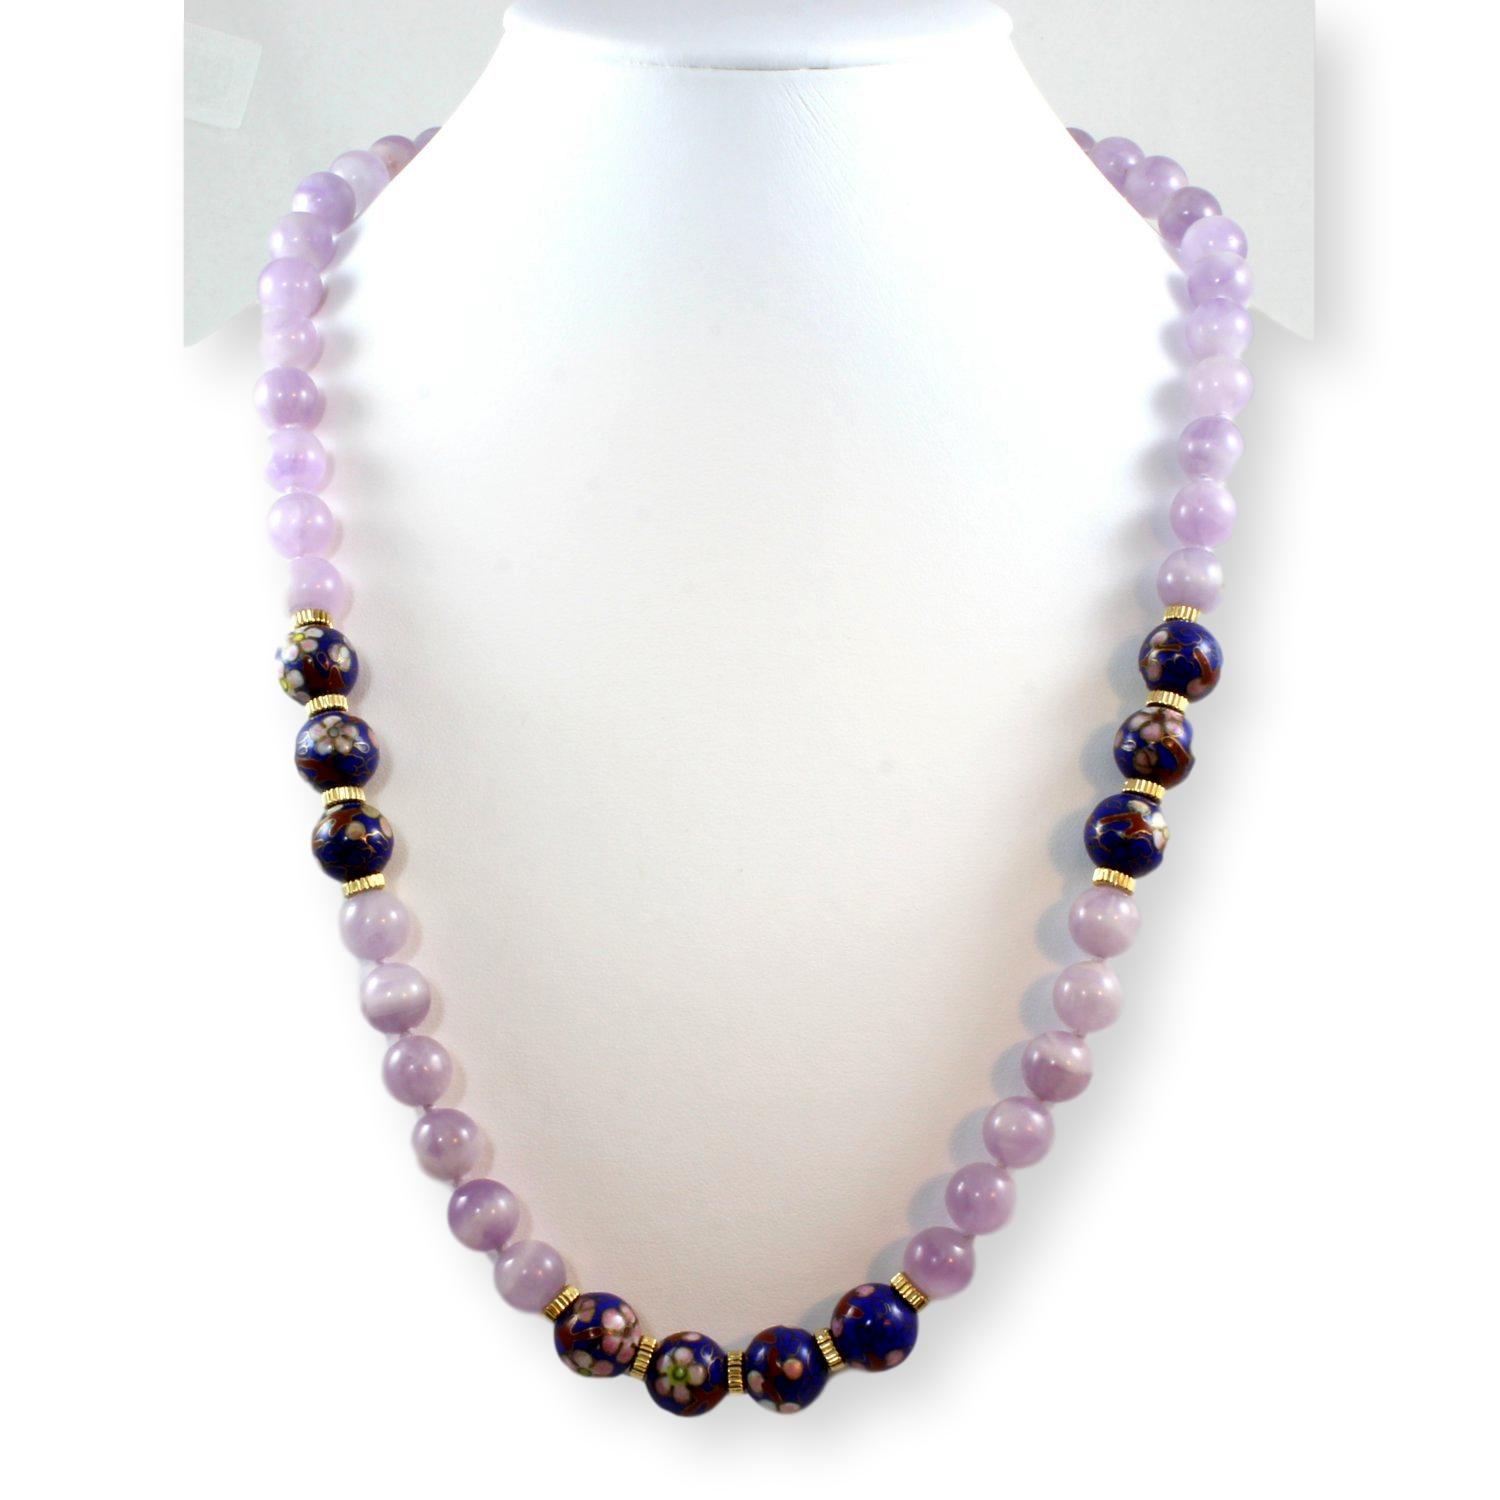 24-Amethyst--Blue-Cloisonne-Bead-Necklace-w14K-Gold-Spacers_86983A.jpg